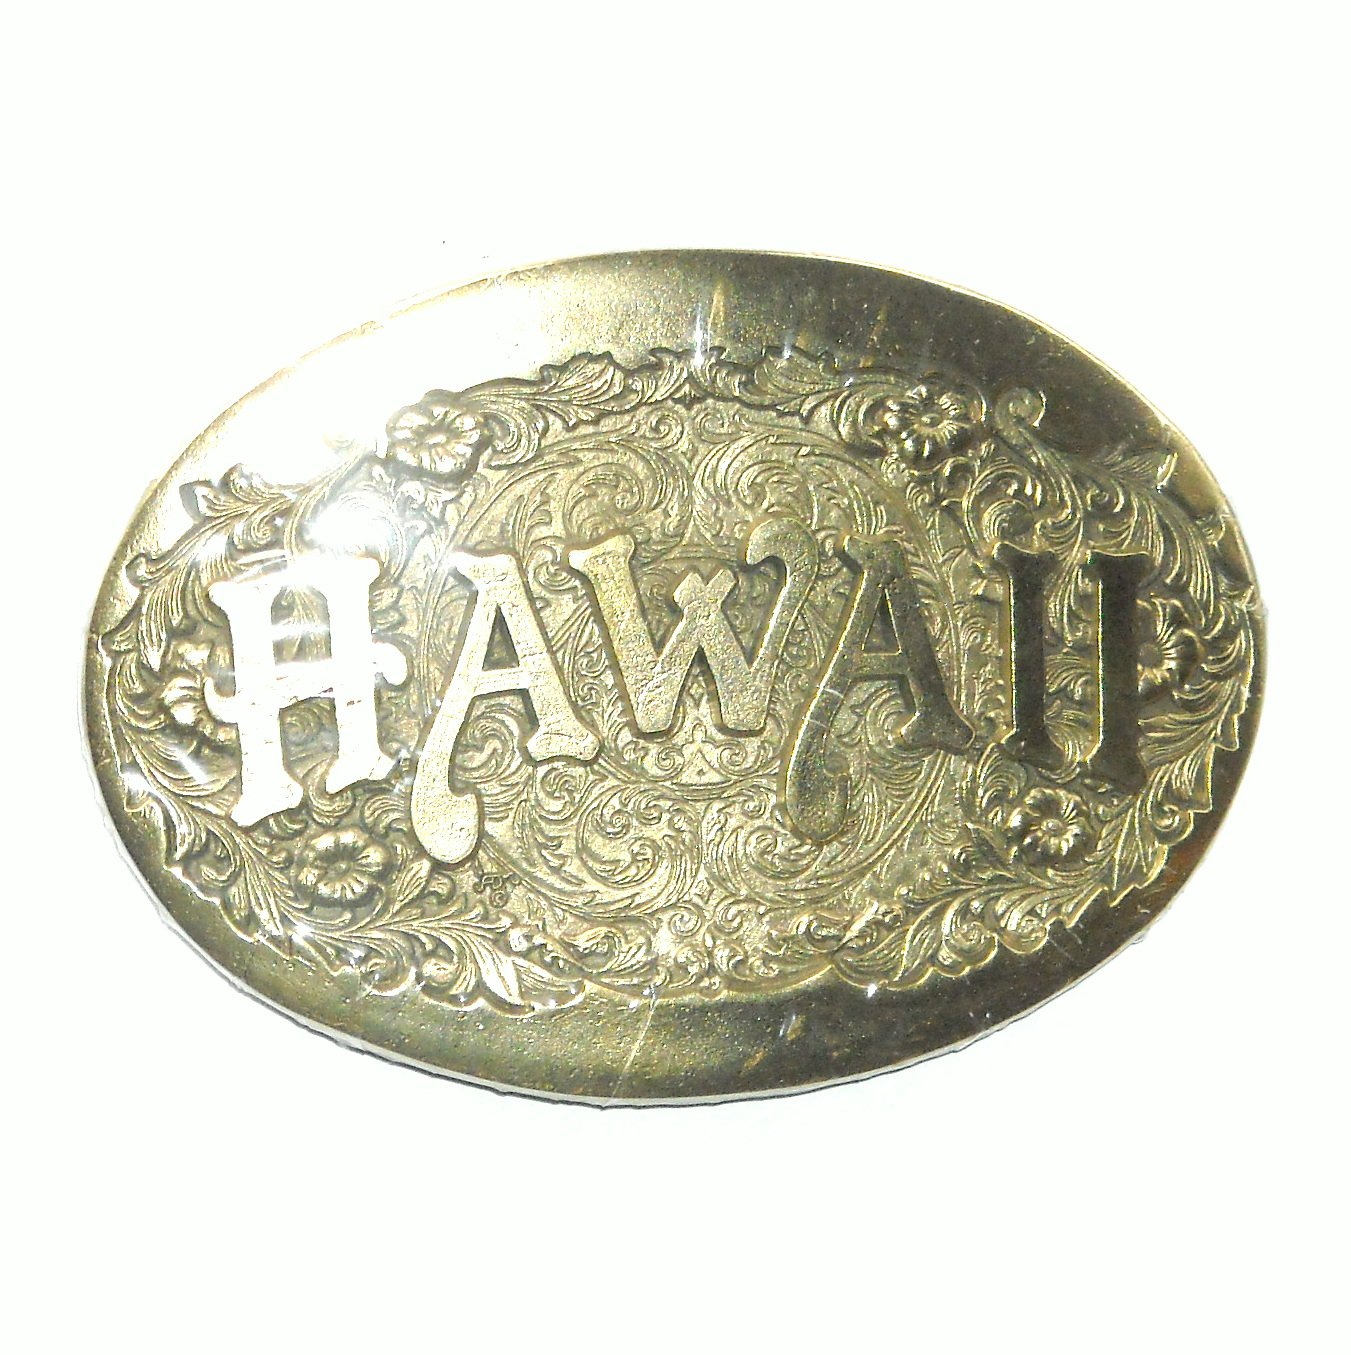 Hawaii Award Design ADM US Solid Brass Belt Buckle